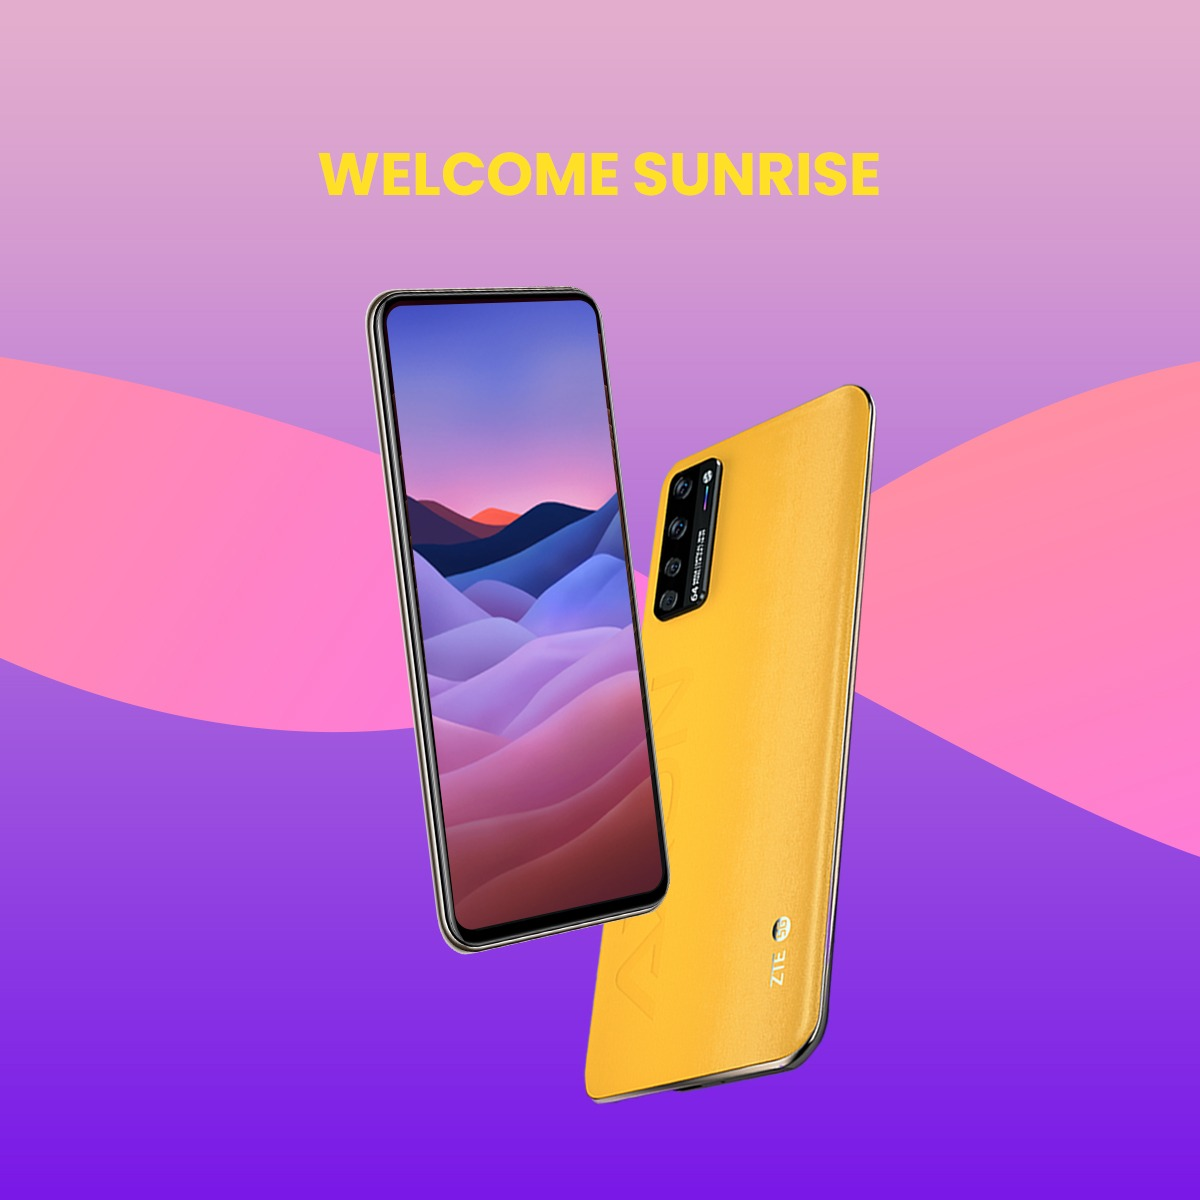 Introducing the brand new Sunrise Yellow edition of the Axon 20 5G. Will be available to the global market January 7th: https://t.co/k8zHDbpJzj https://t.co/gROgTN6U7l